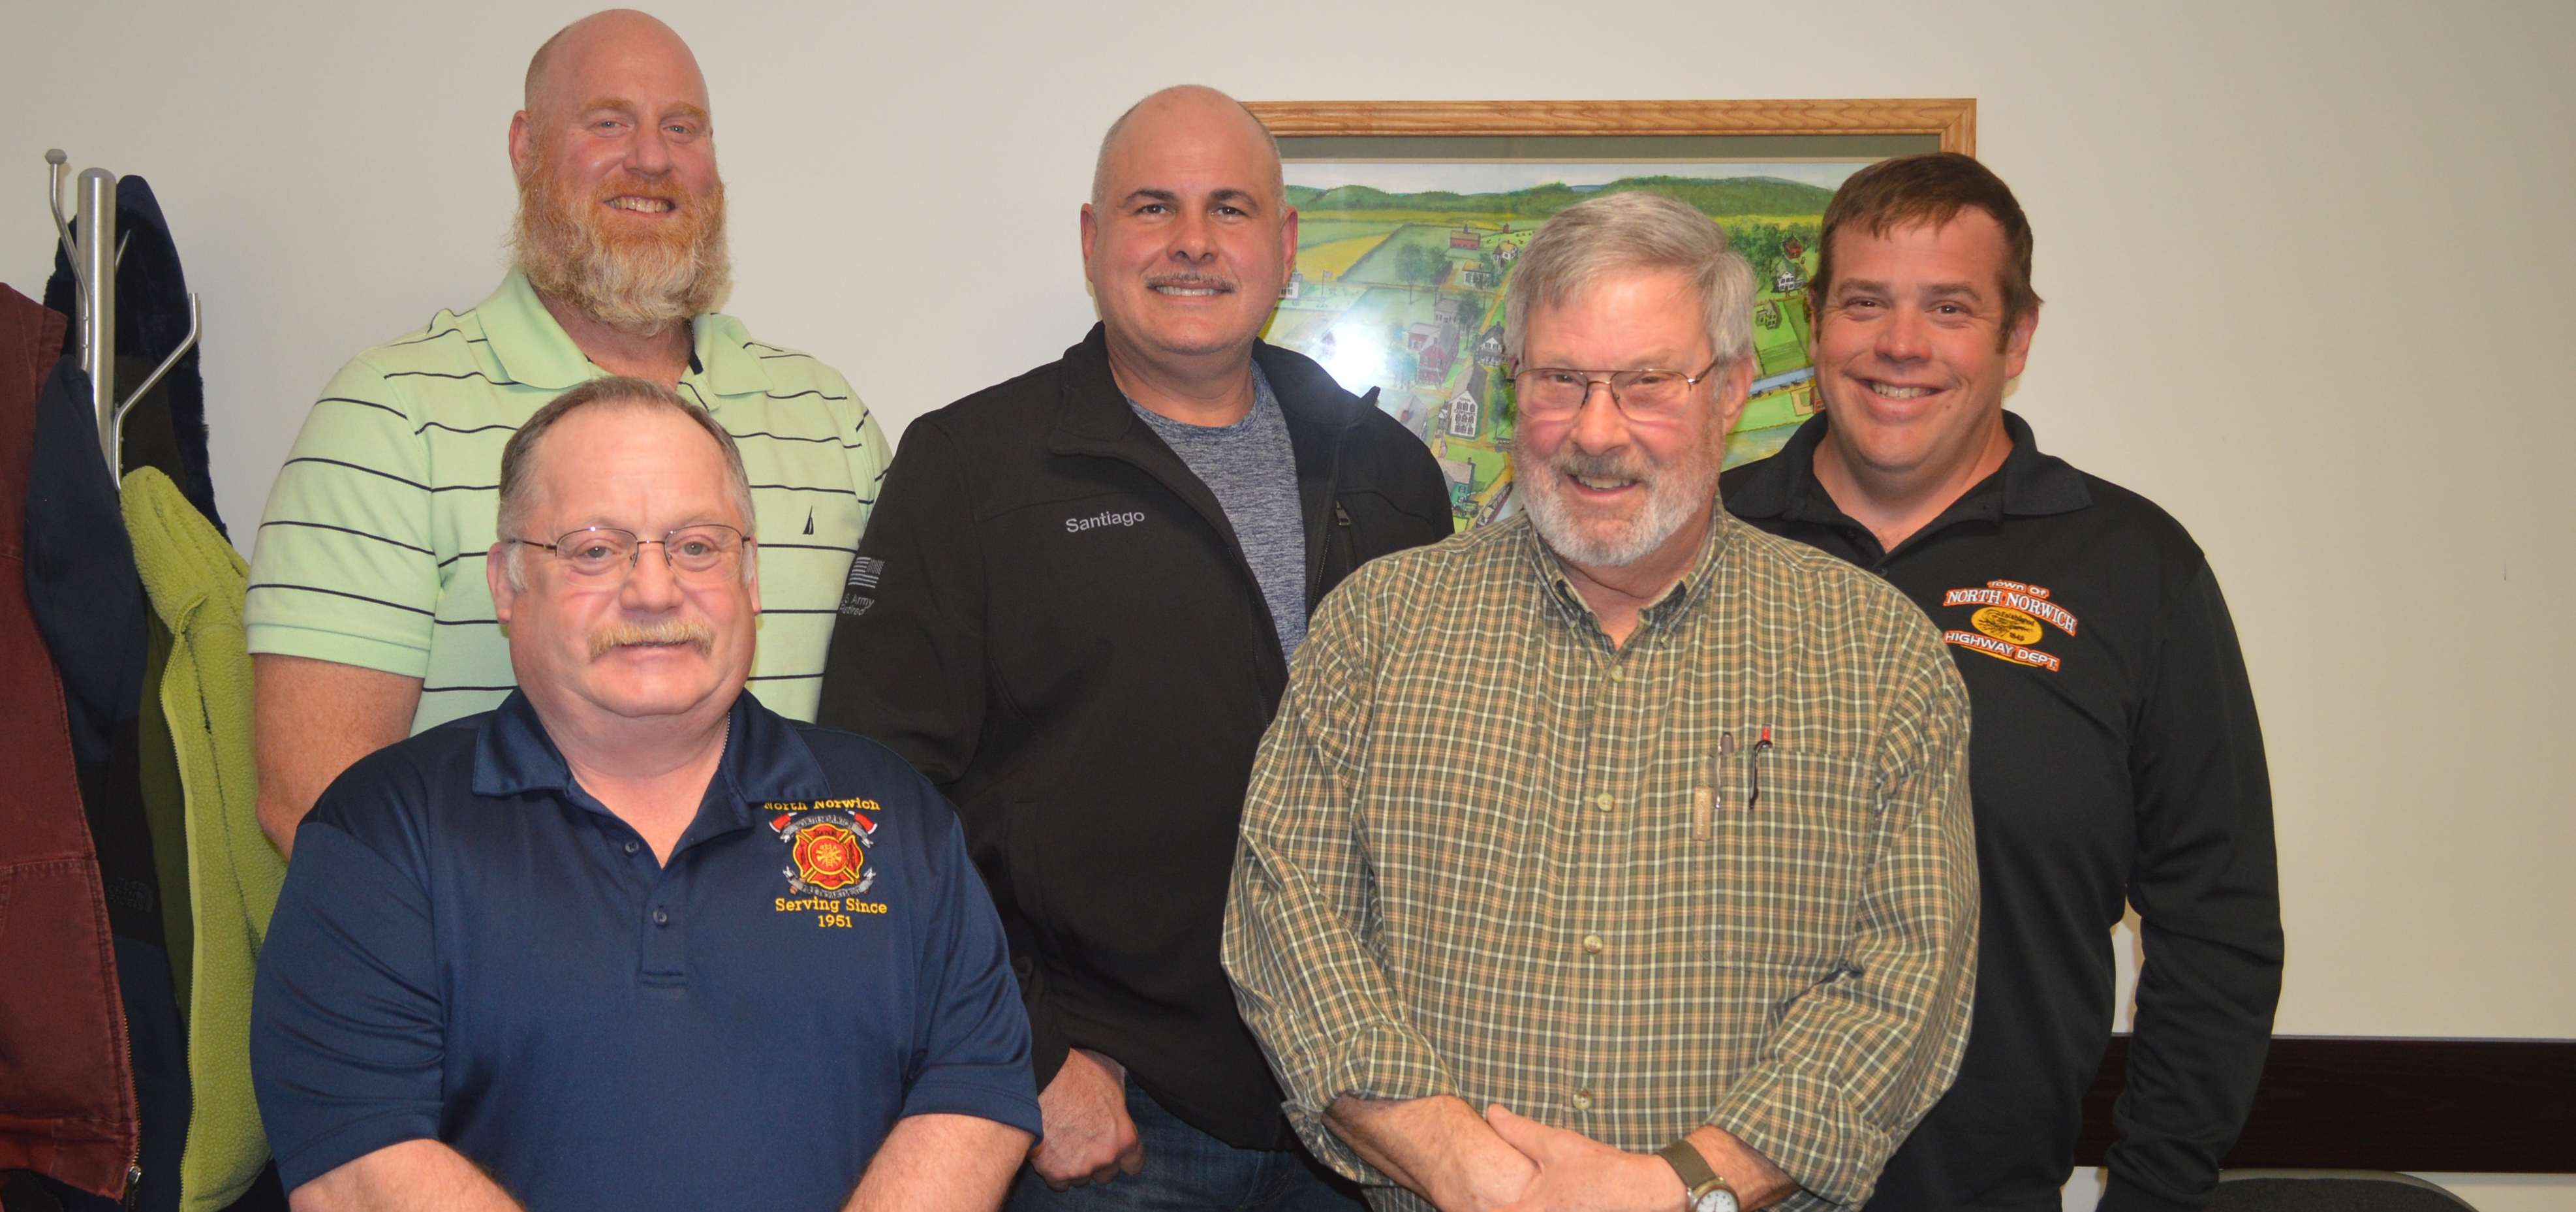 North Norwich introduces new town officials